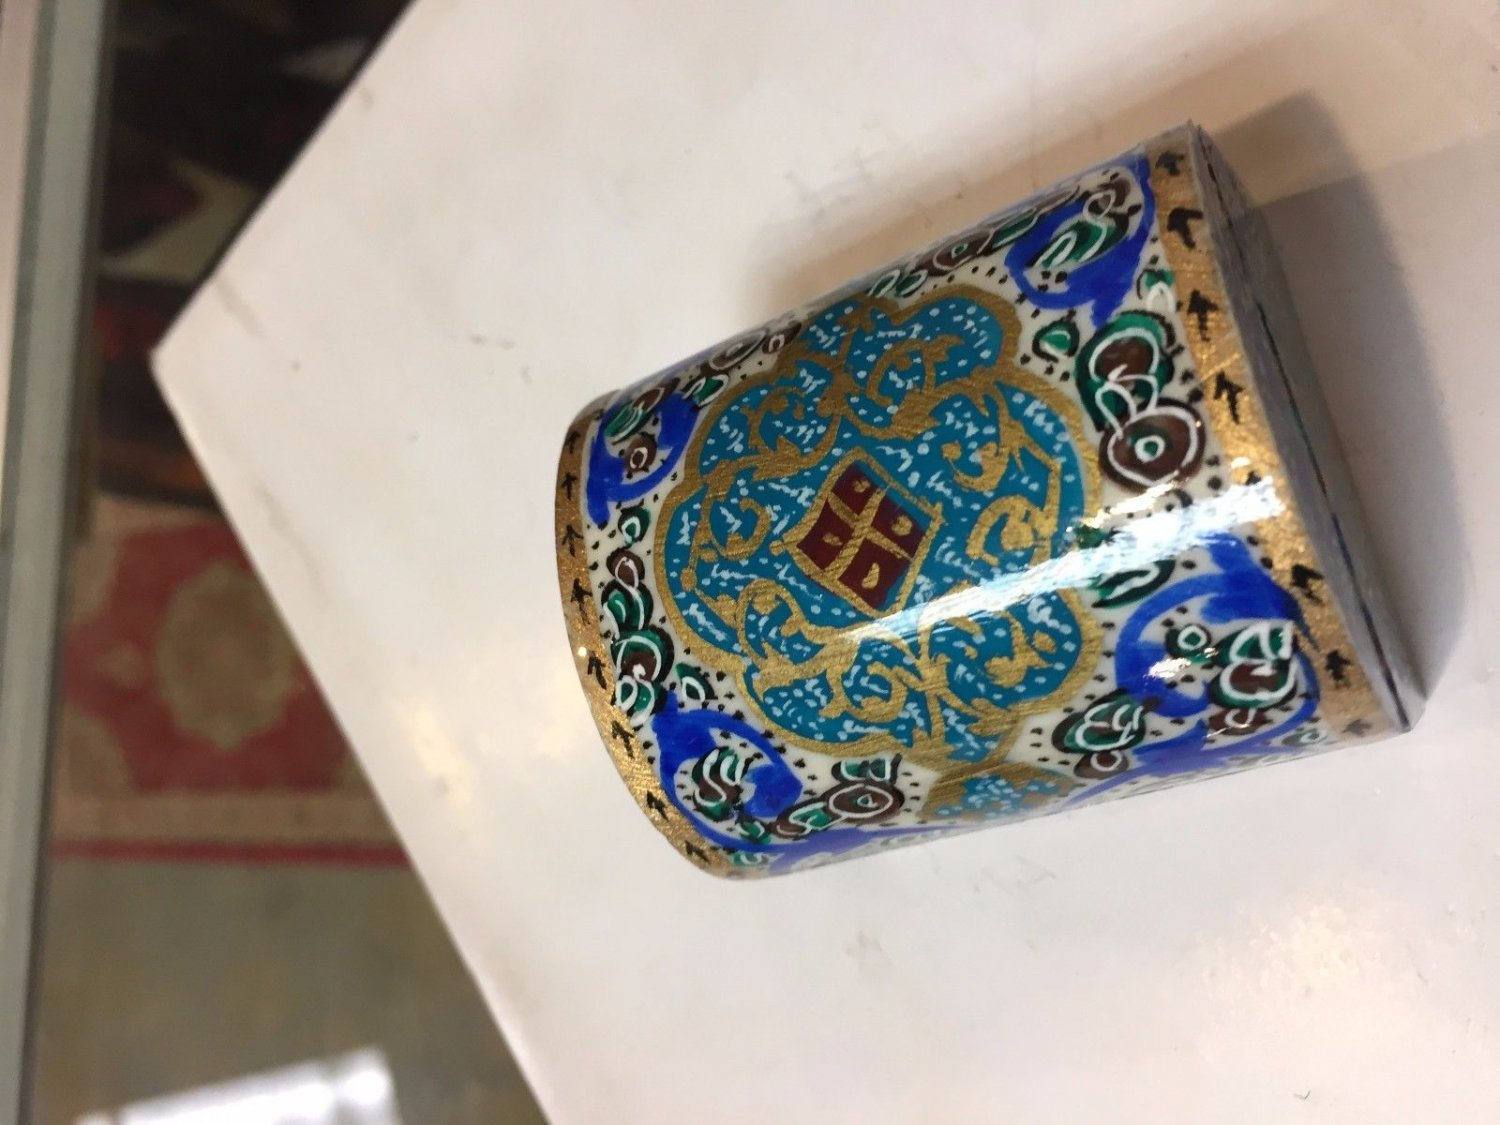 superb nice box hand paint hand made gift decorative collectible master made art